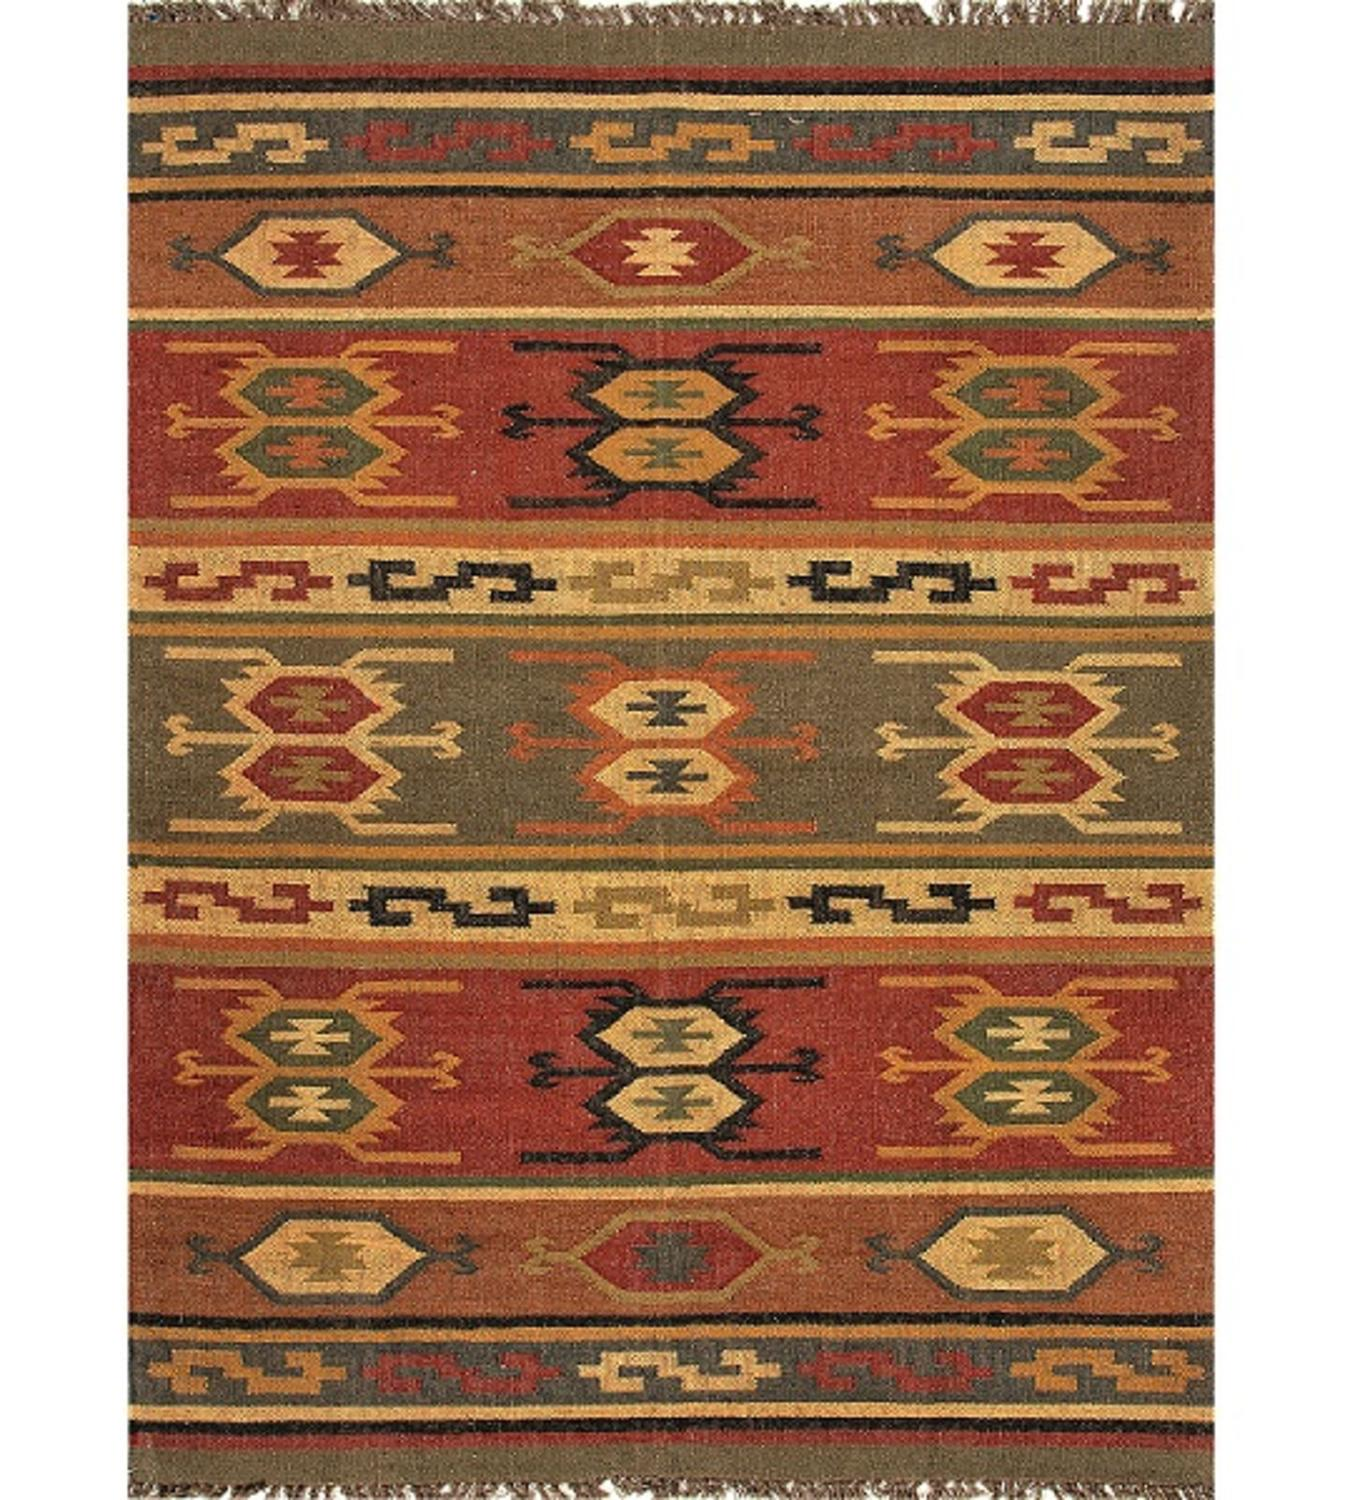 2' x 3' Cardinal Red, Gold & Green Tribal Hand Woven Reversible Wool and Jute Area Throw Rug